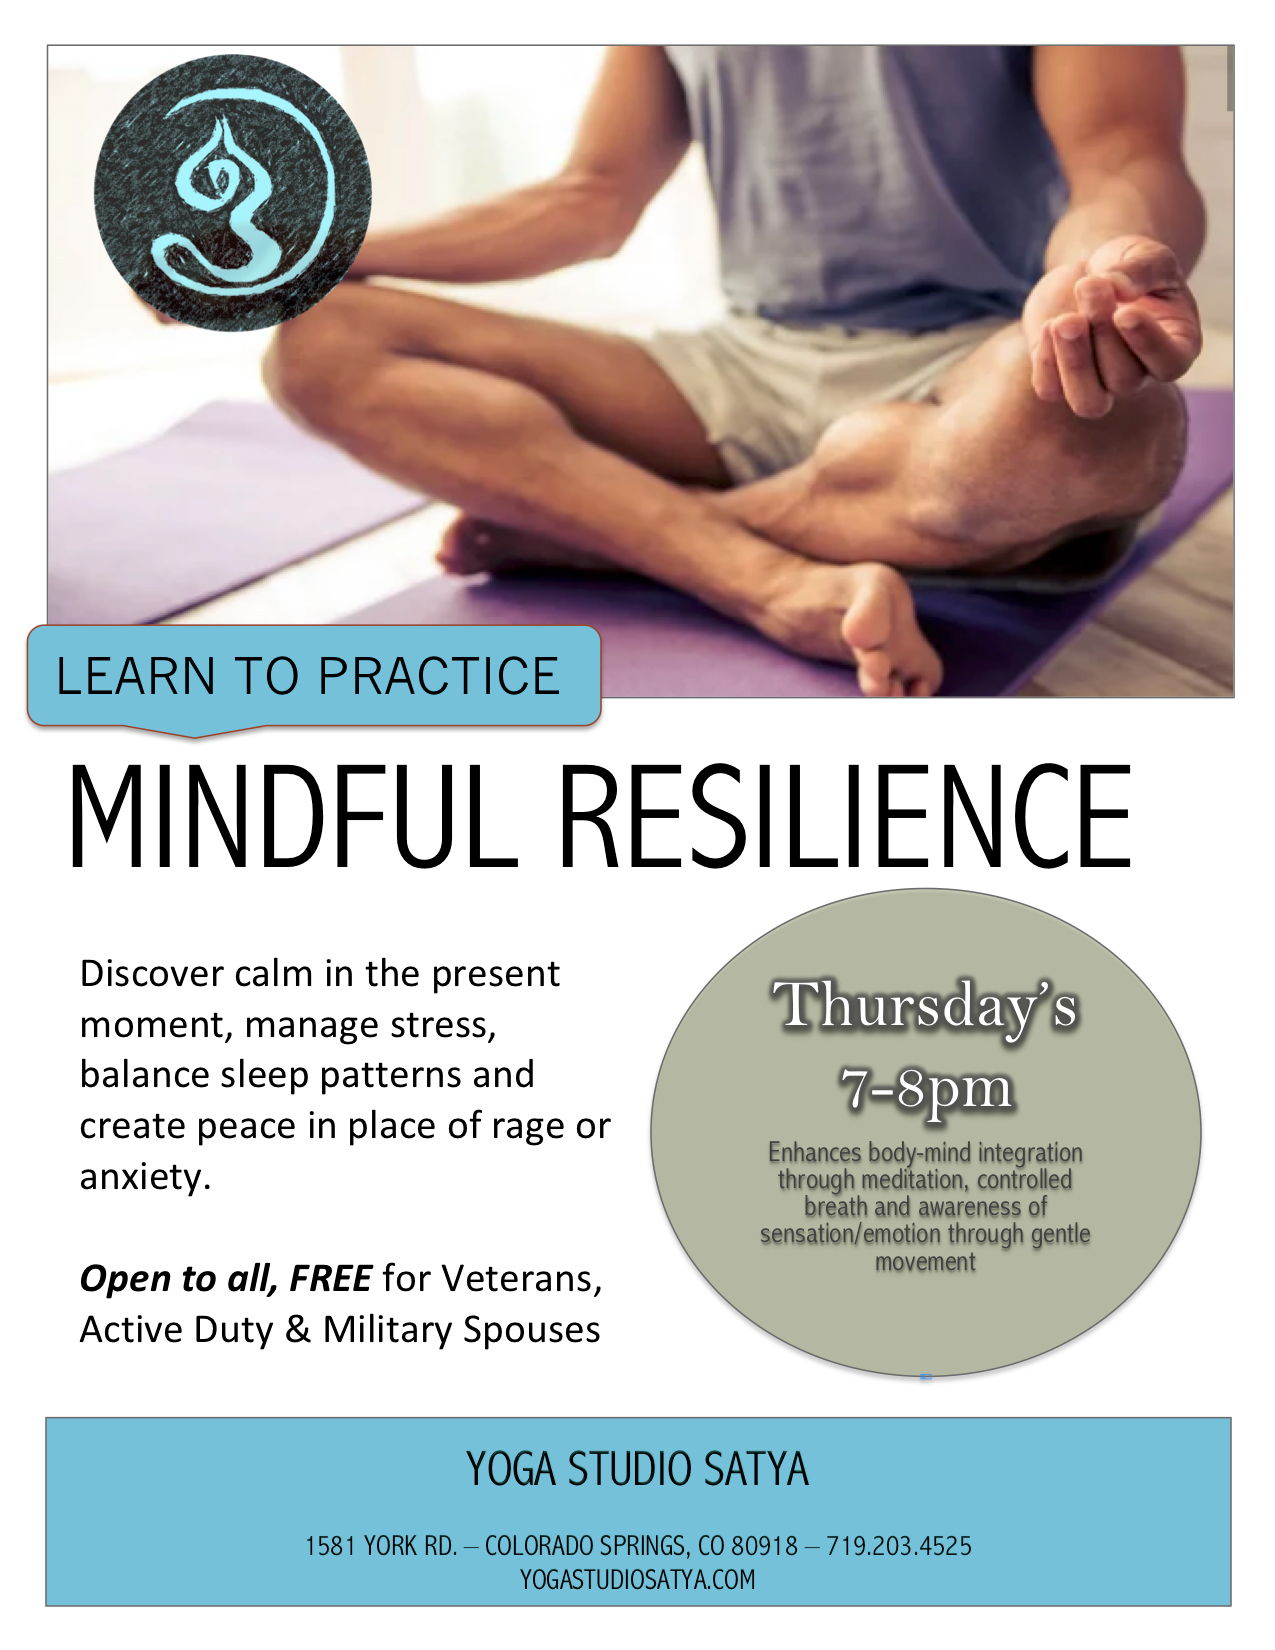 Mindfull Resilience